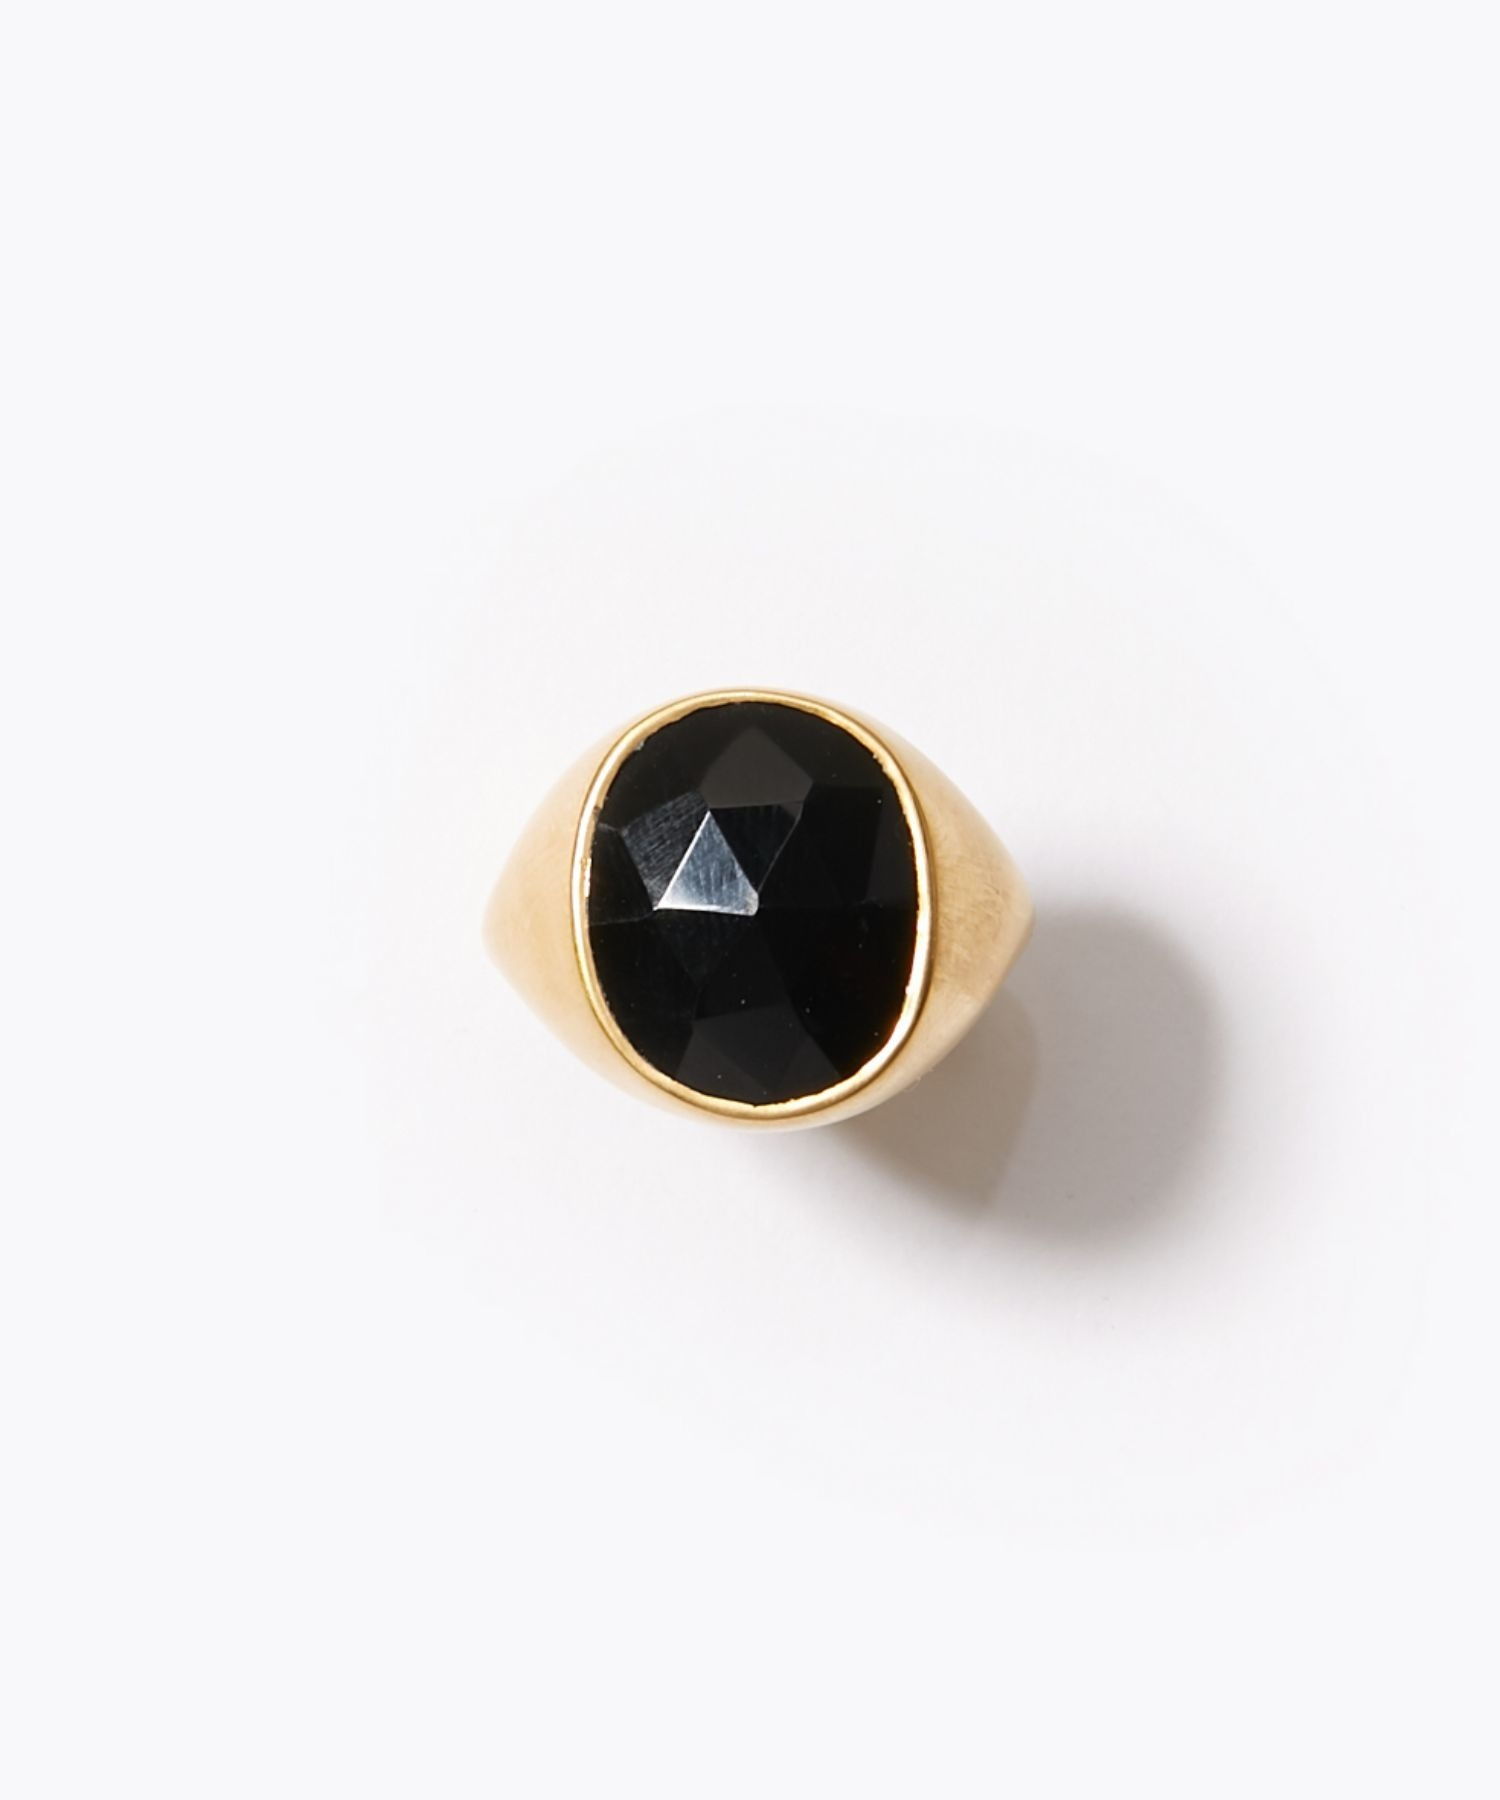 [eutopia] unisex pebble onyx signet ring